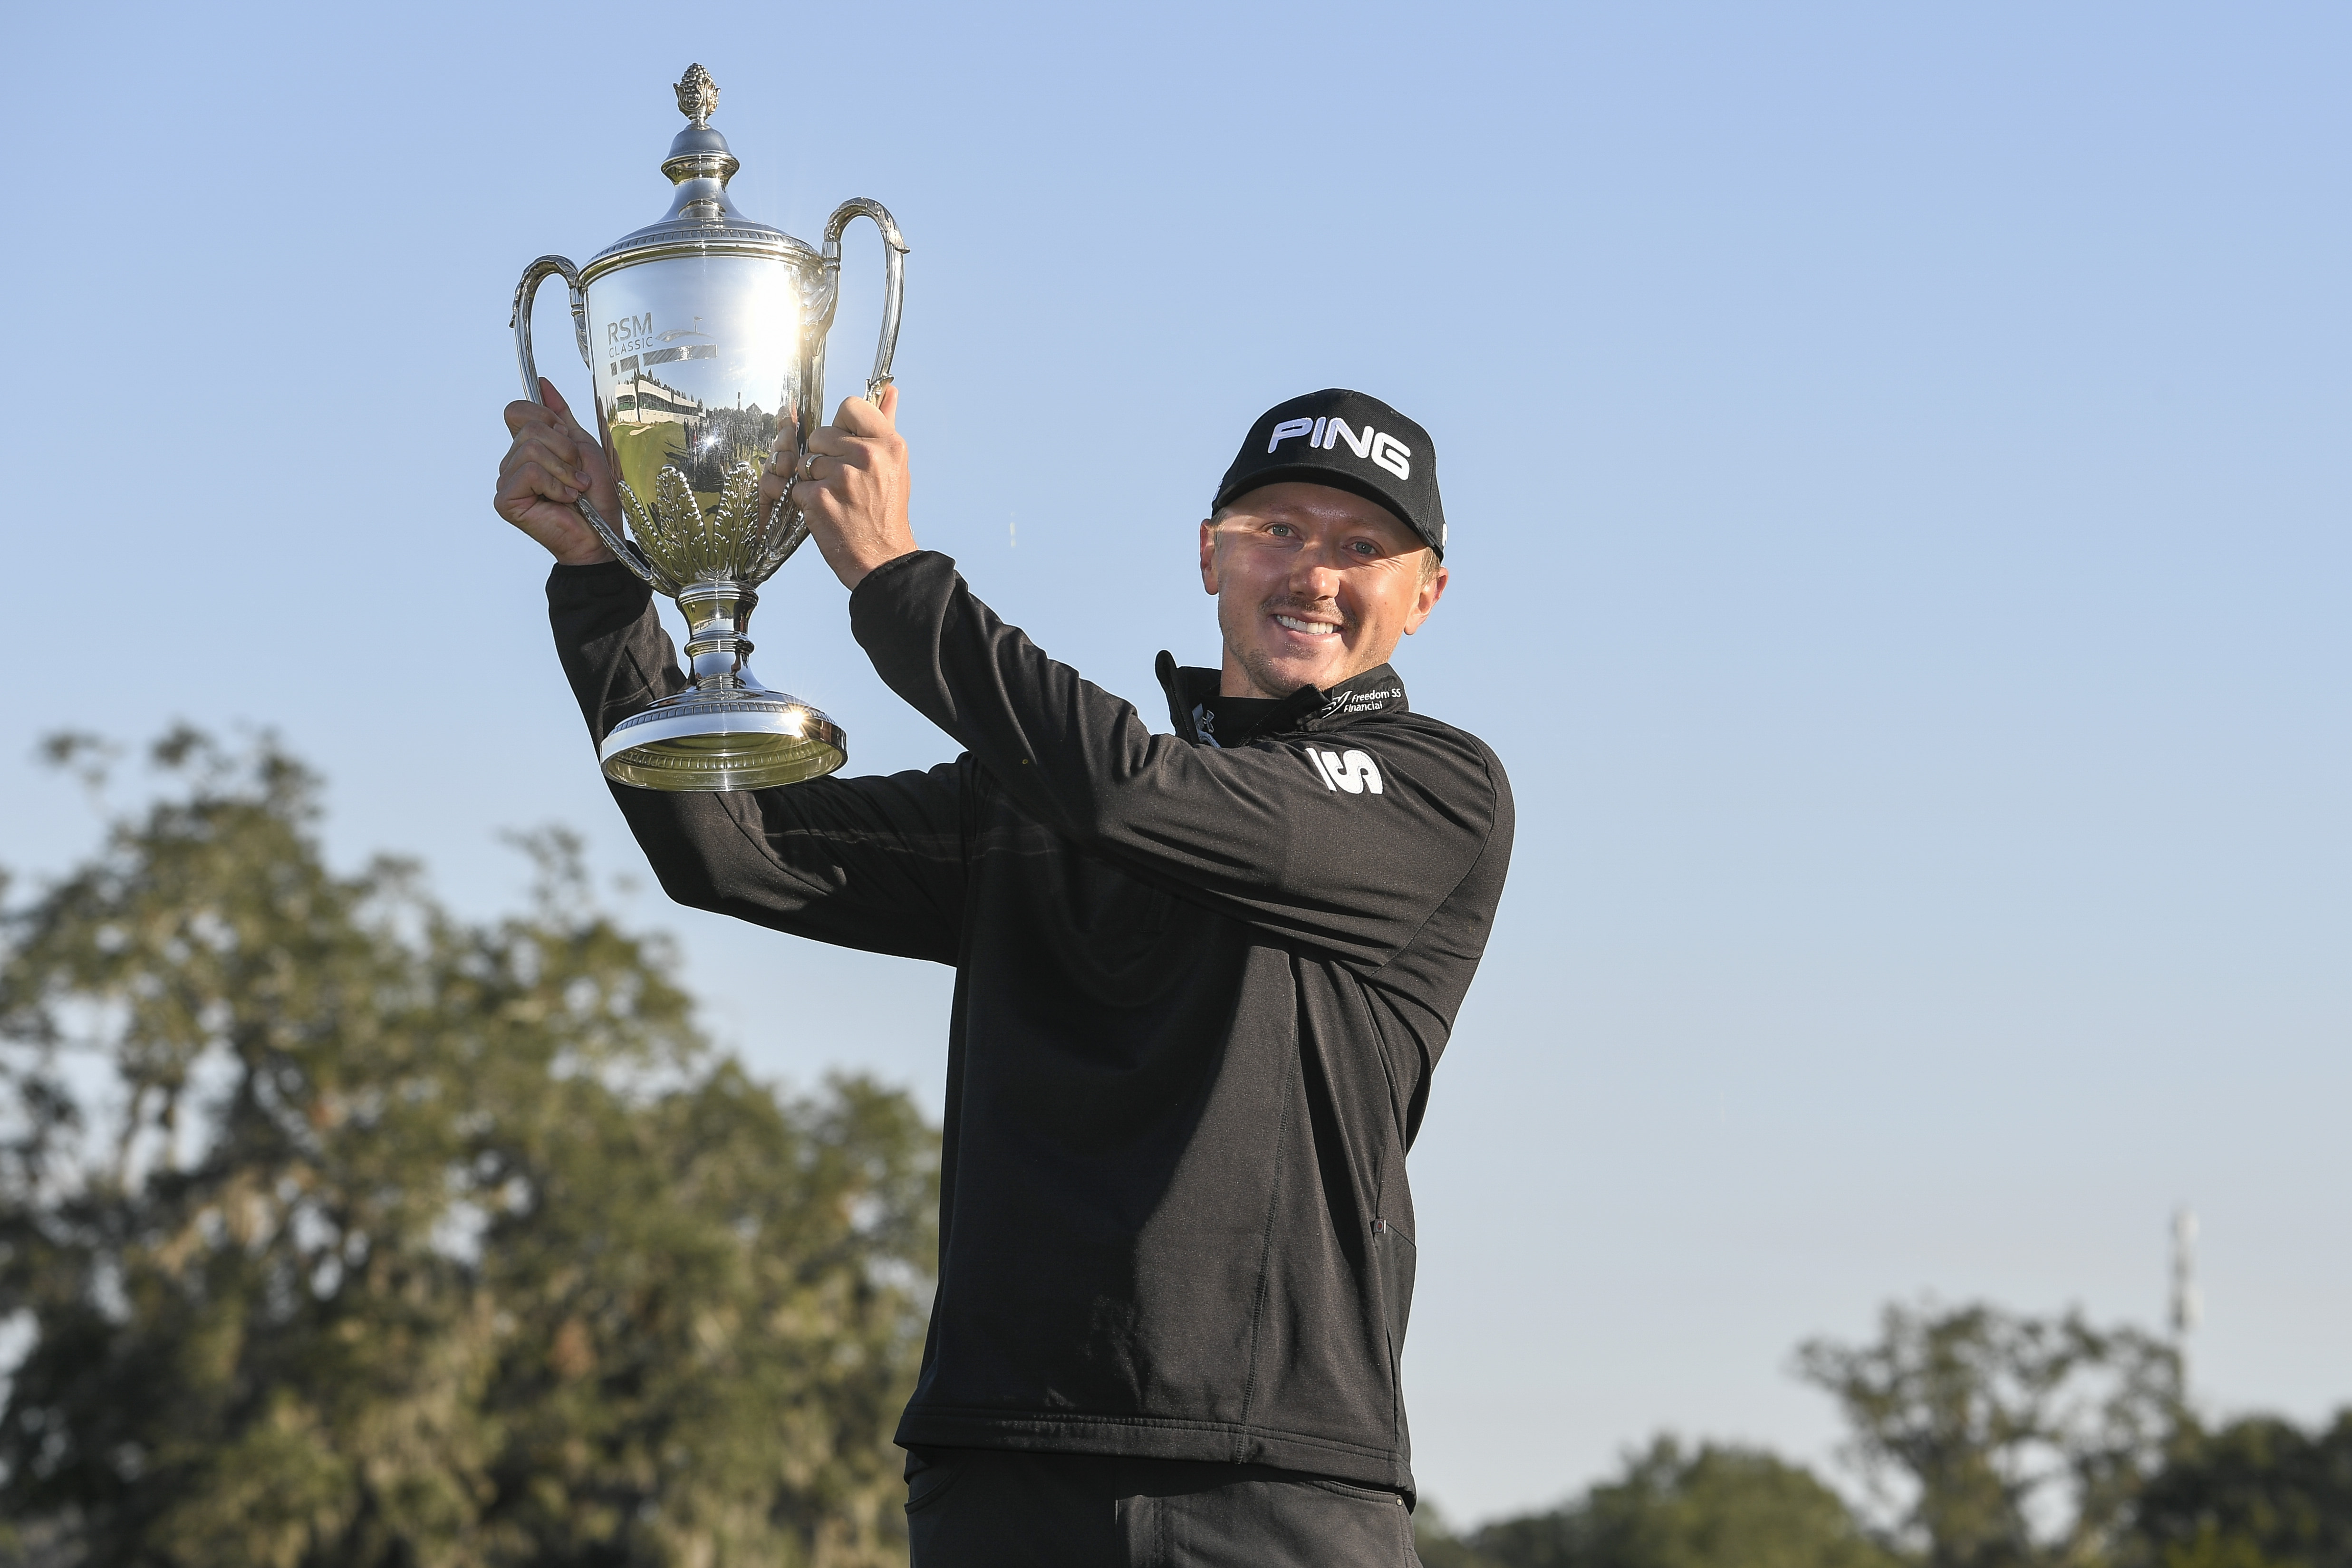 SEA ISLAND, GEORGIA - NOVEMBER 21: Mackenzie Hughes poses with the trophy following his victory in the playoff of the final round of The RSM Classic at Sea Island Resort Seaside Course on November 21, 2016 in Sea Island, Georgia. (Photo by Ryan Young/PGA TOUR)